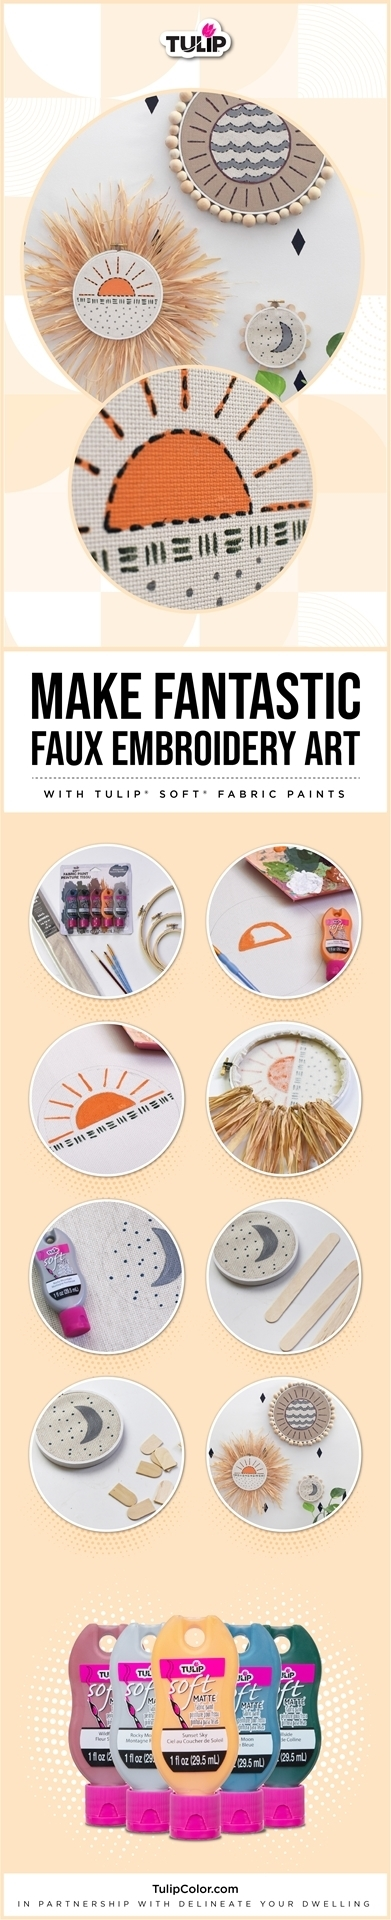 Fabric Paint Faux Embroidery Painting Tutorial